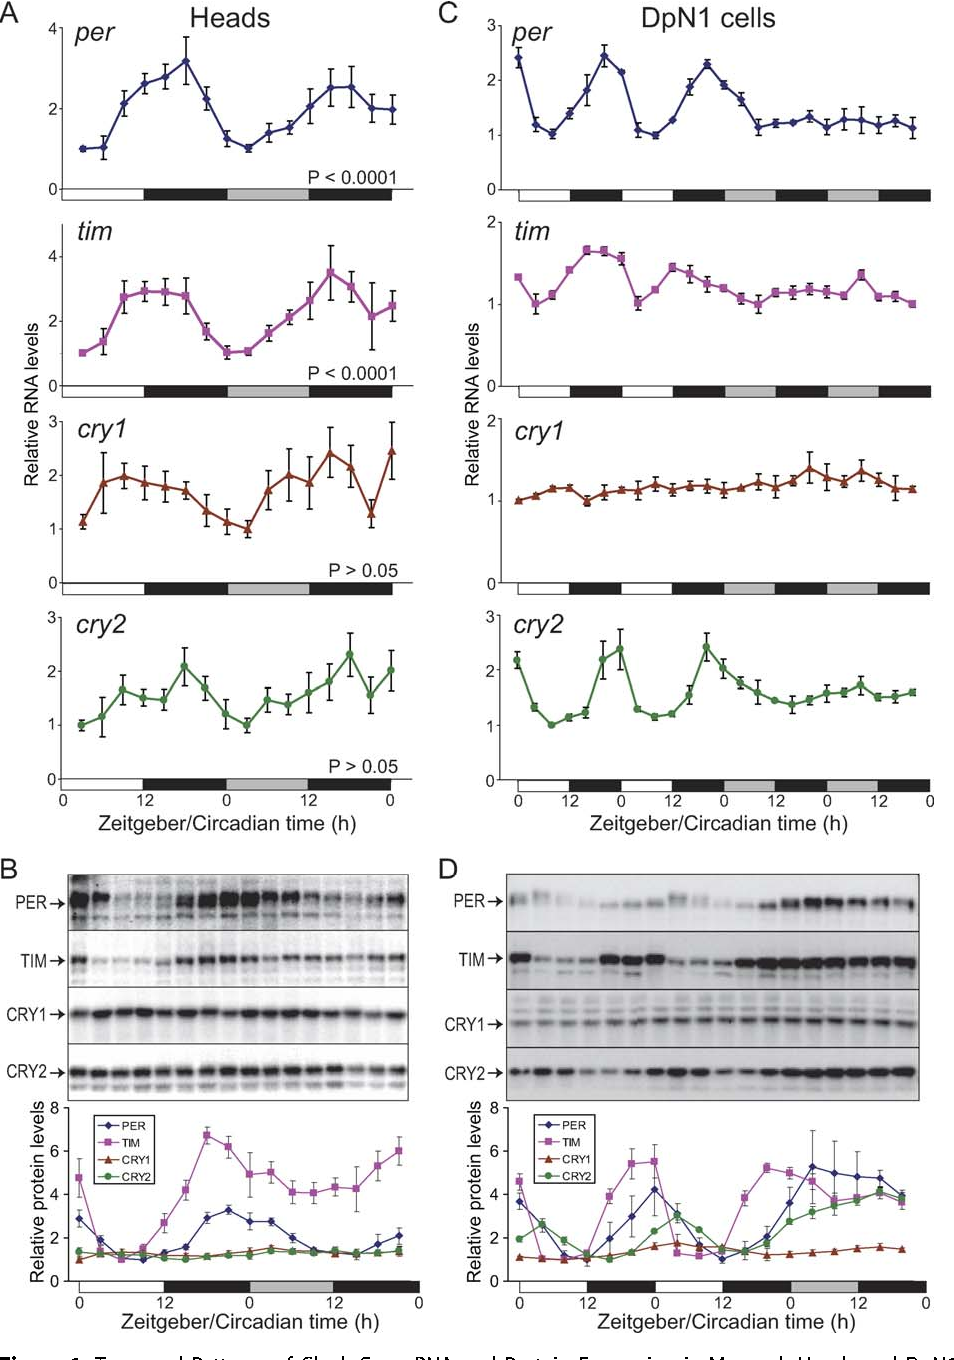 Gene Expression Patterns May Underlie >> Figure 1 From Cryptochromes Define A Novel Circadian Clock Mechanism